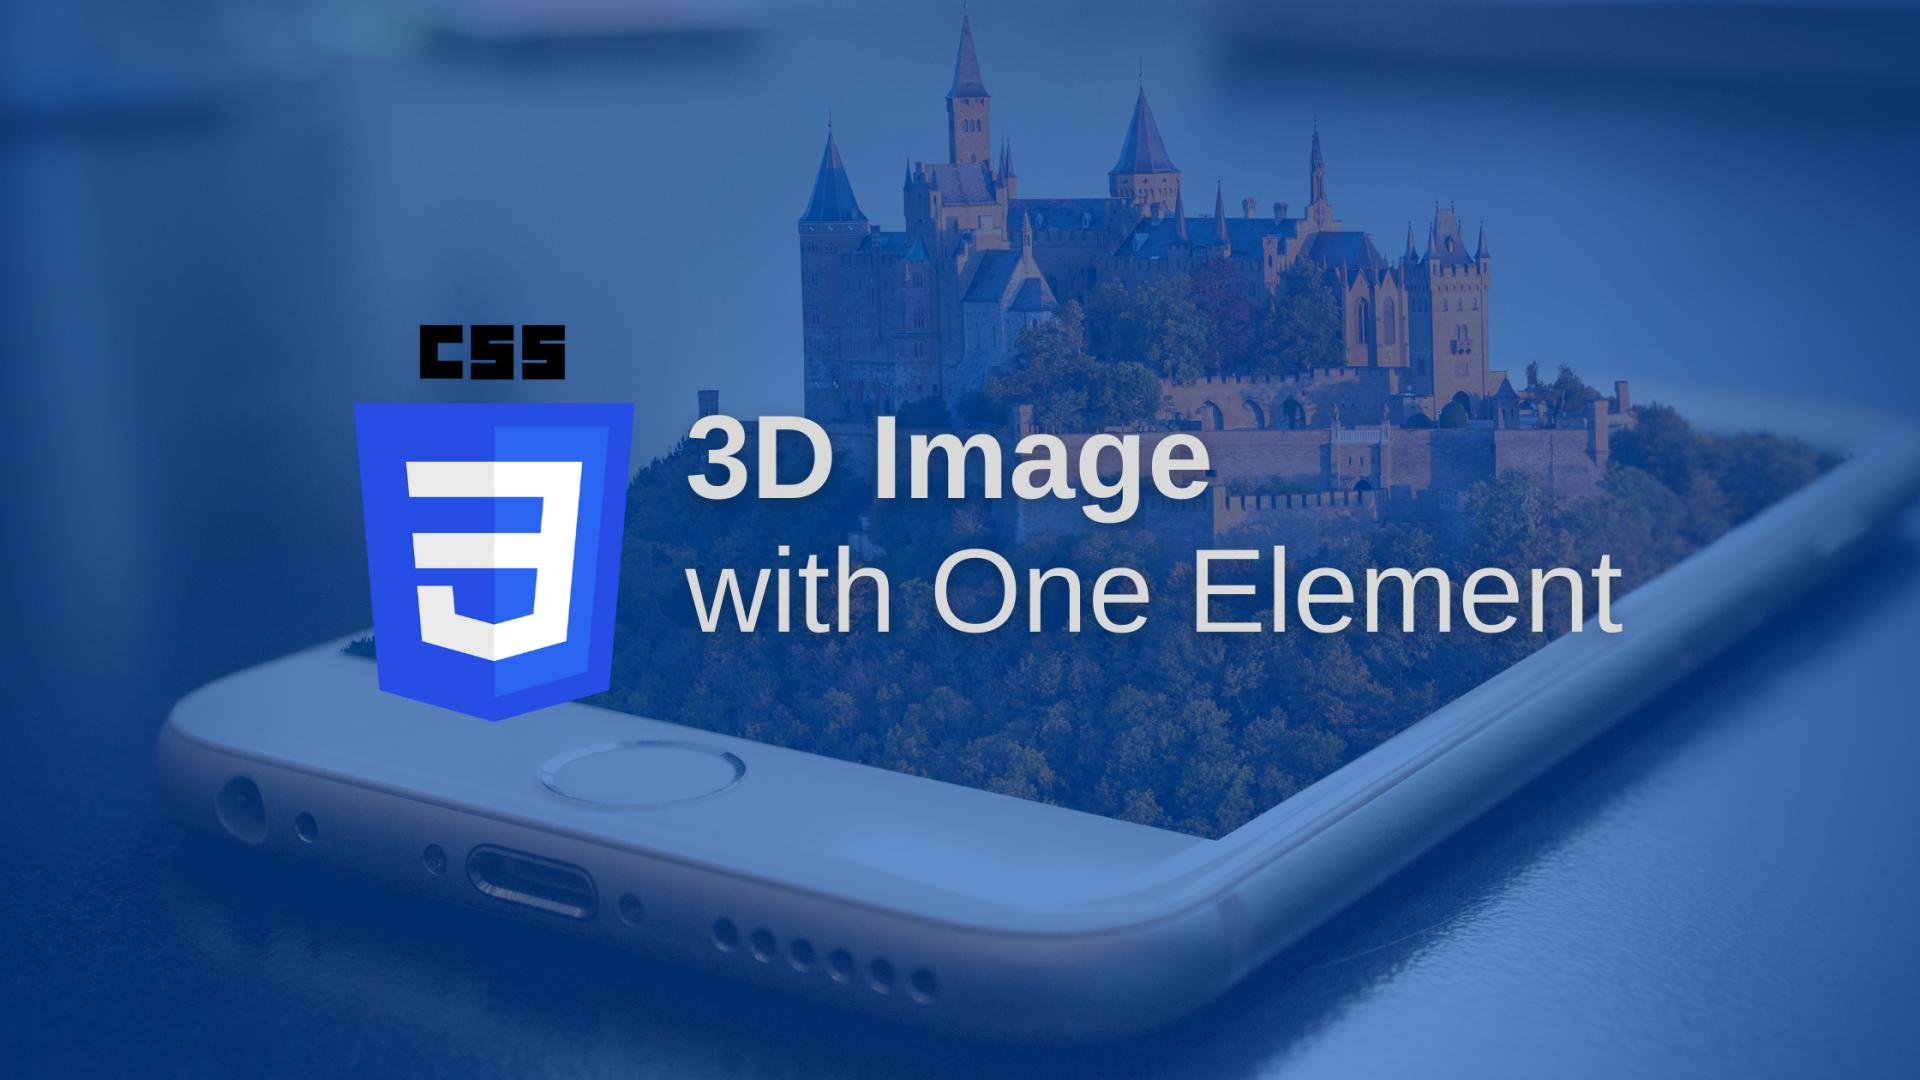 3D image with one element